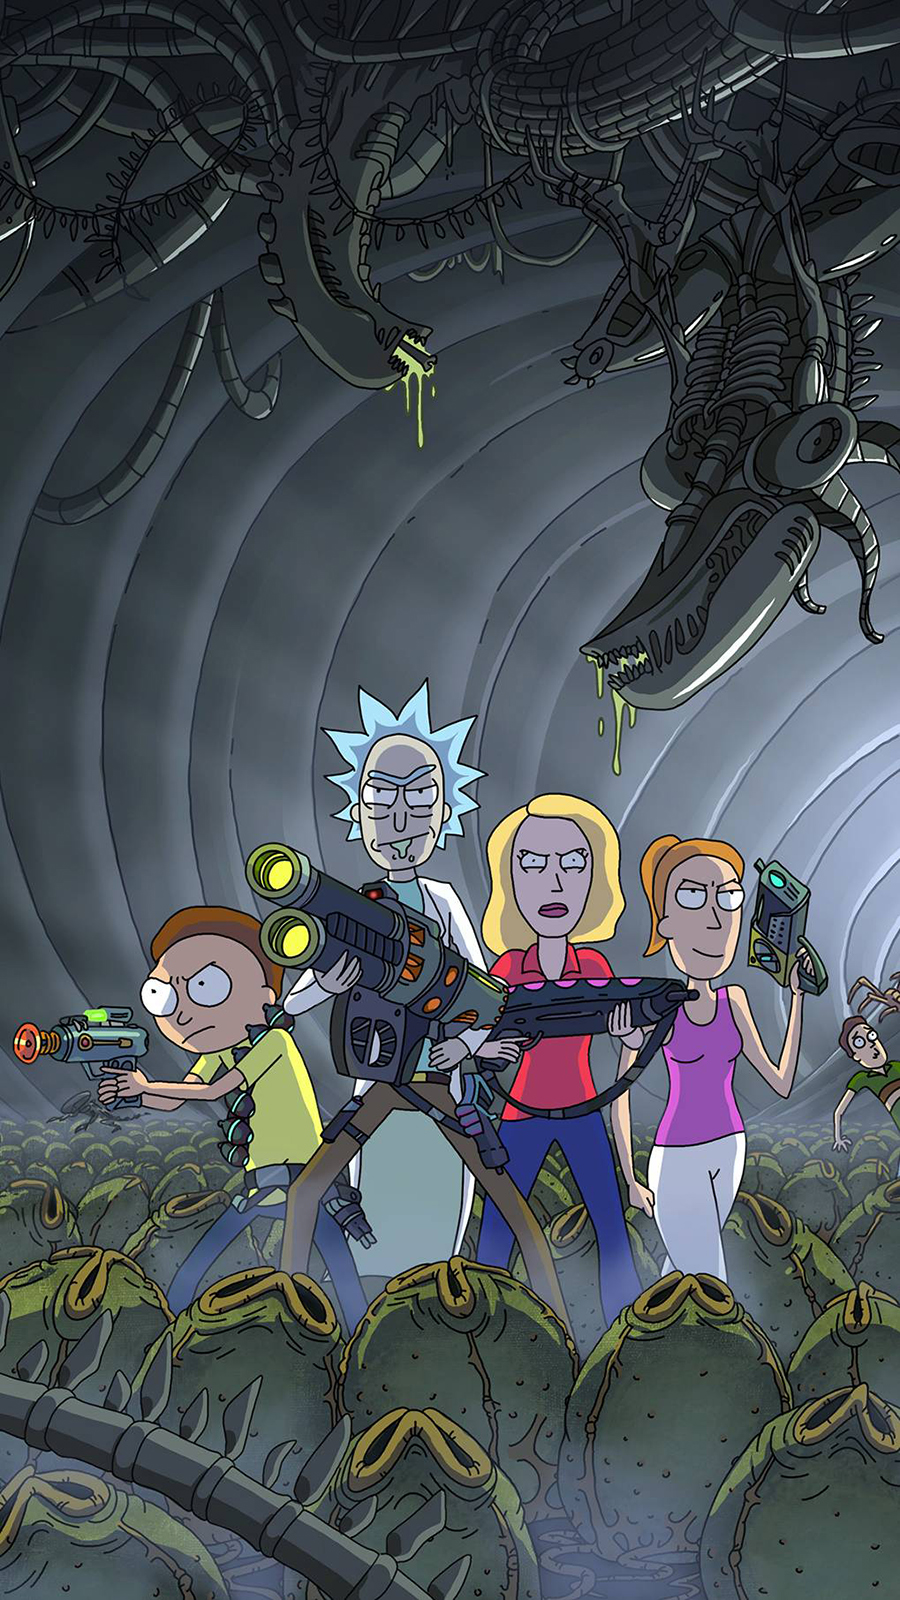 Rick & Morty Cartoon Wallpapers Now Download For Your Device